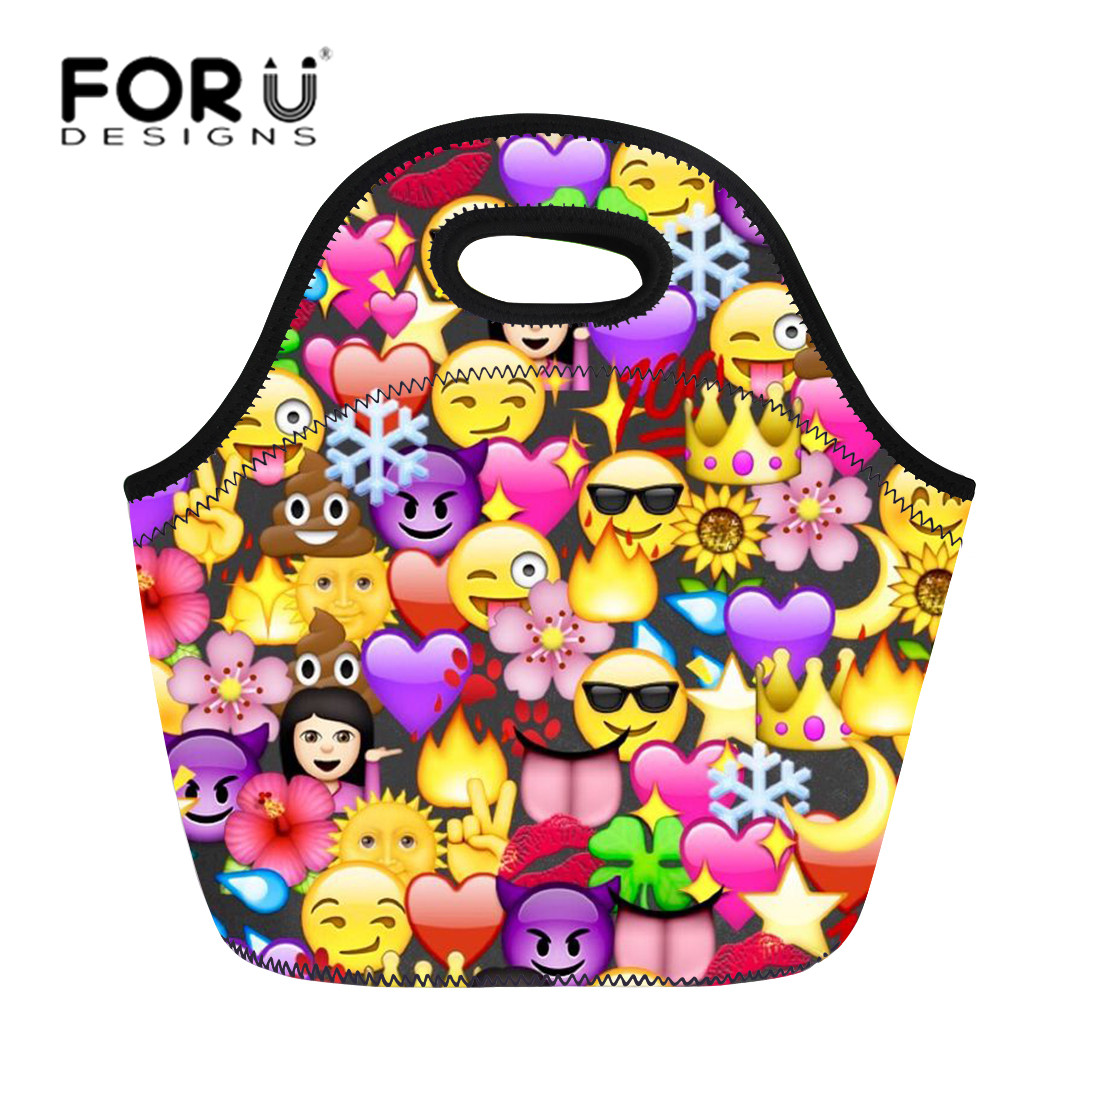 Functional Bags Beautiful Forudesigns Lunch Bag Thermal Lunch Box Women Handle Bags Tote Storage For Kids Girls Corgi School Lancheira Escolar Keep Worm Beautiful In Colour